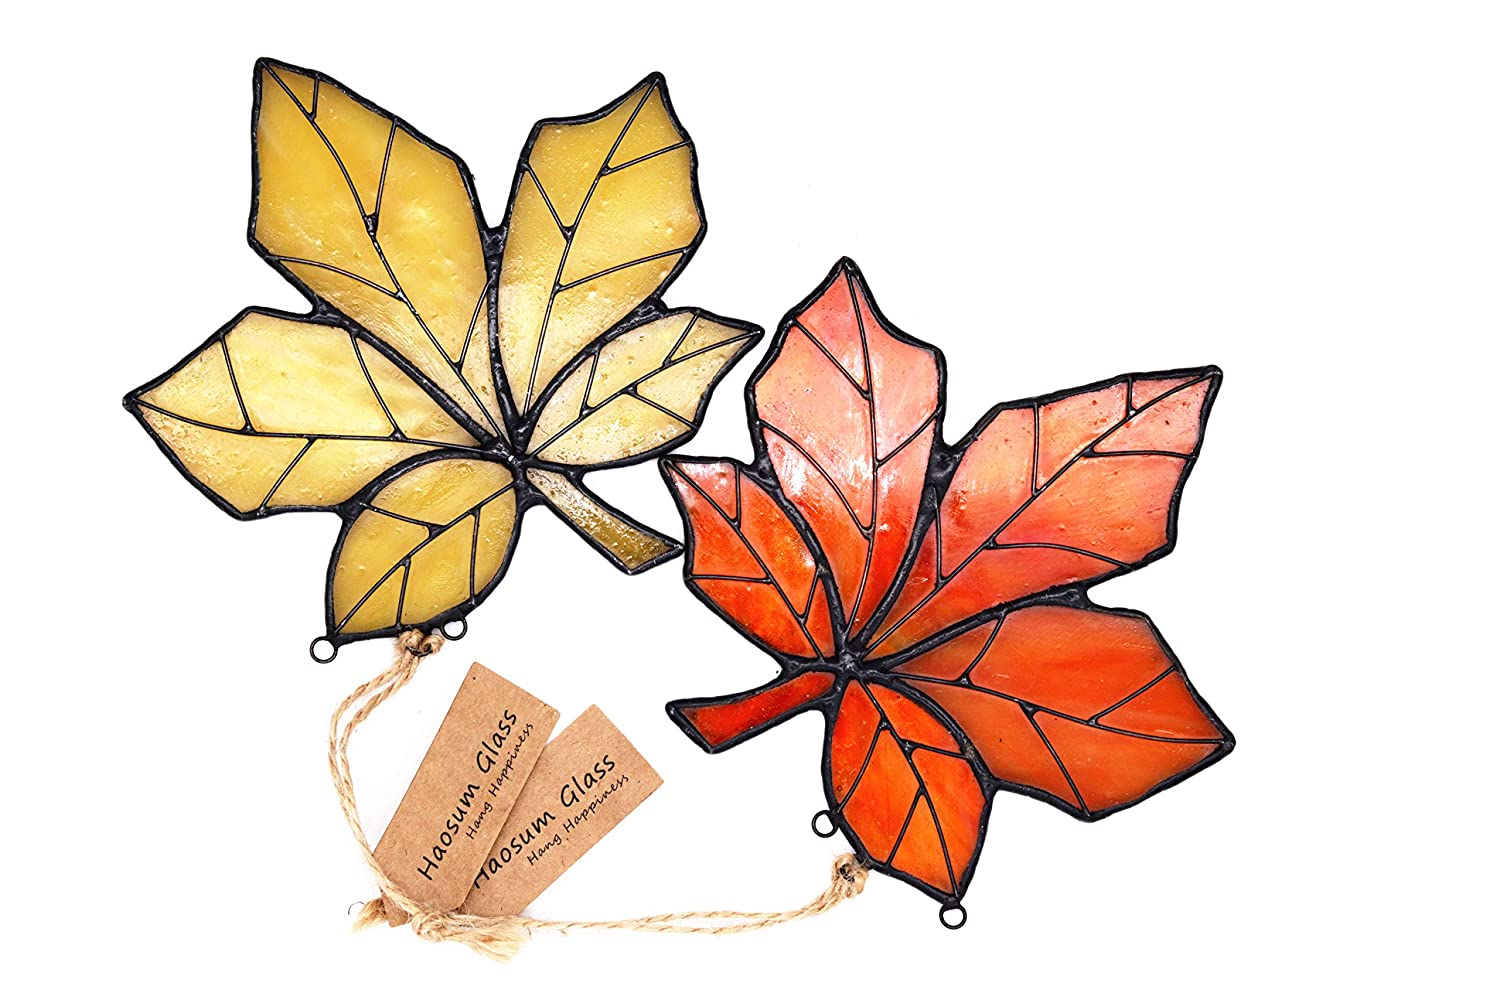 HAOSUM Stained Glass Ornament Window Hanging Pack of 2 Maple Leaf Glass Suncatcher Handmade 4X4.4 Inches Haosum Art Glass Factory